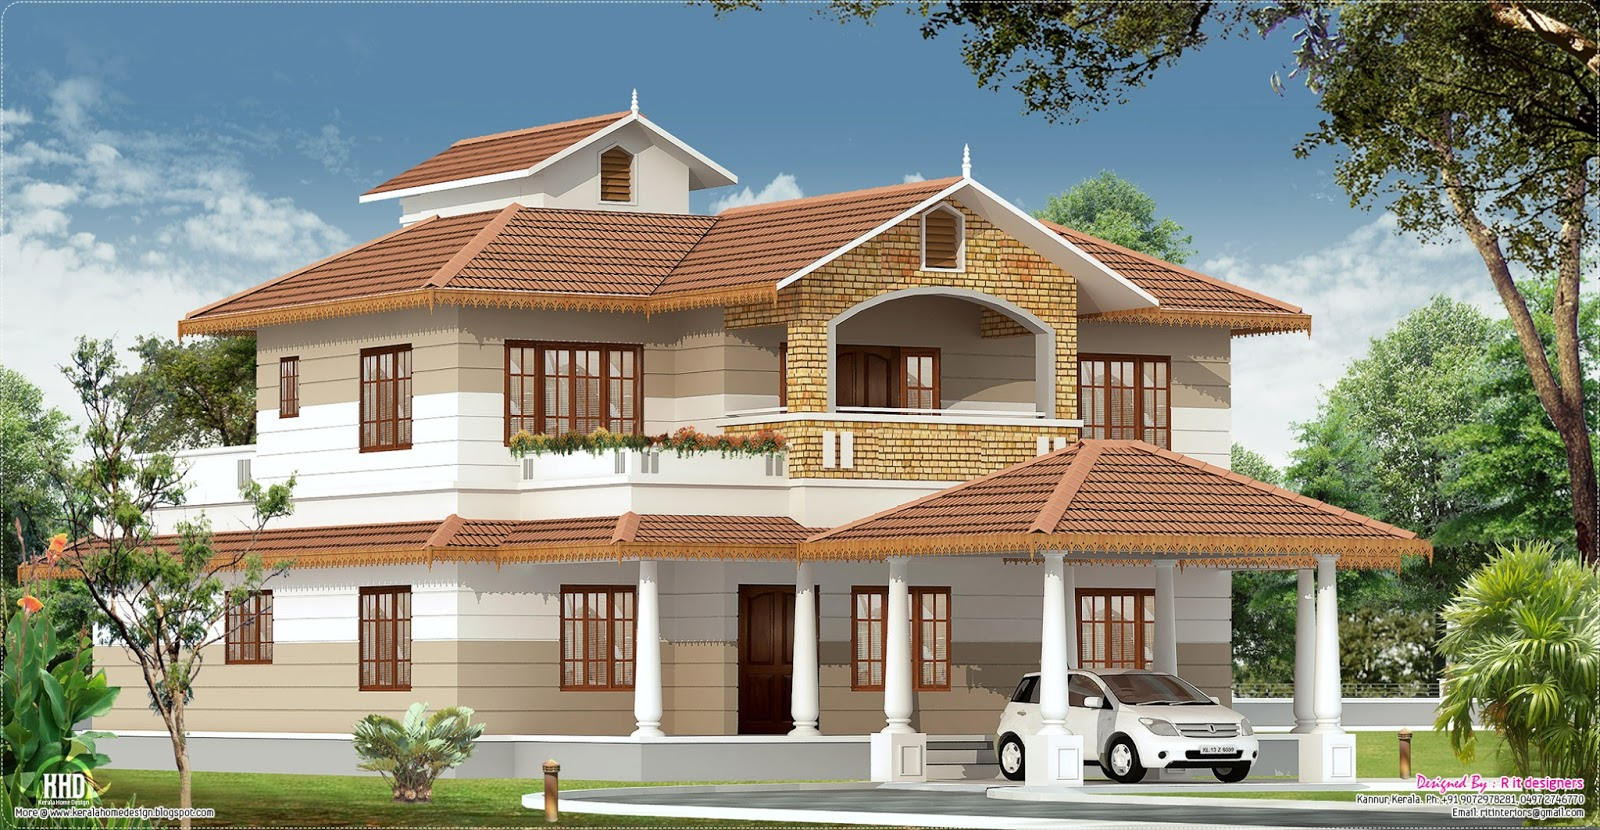 2700 Kerala Home With Interior Designs Kerala Home Design And Floor Plans